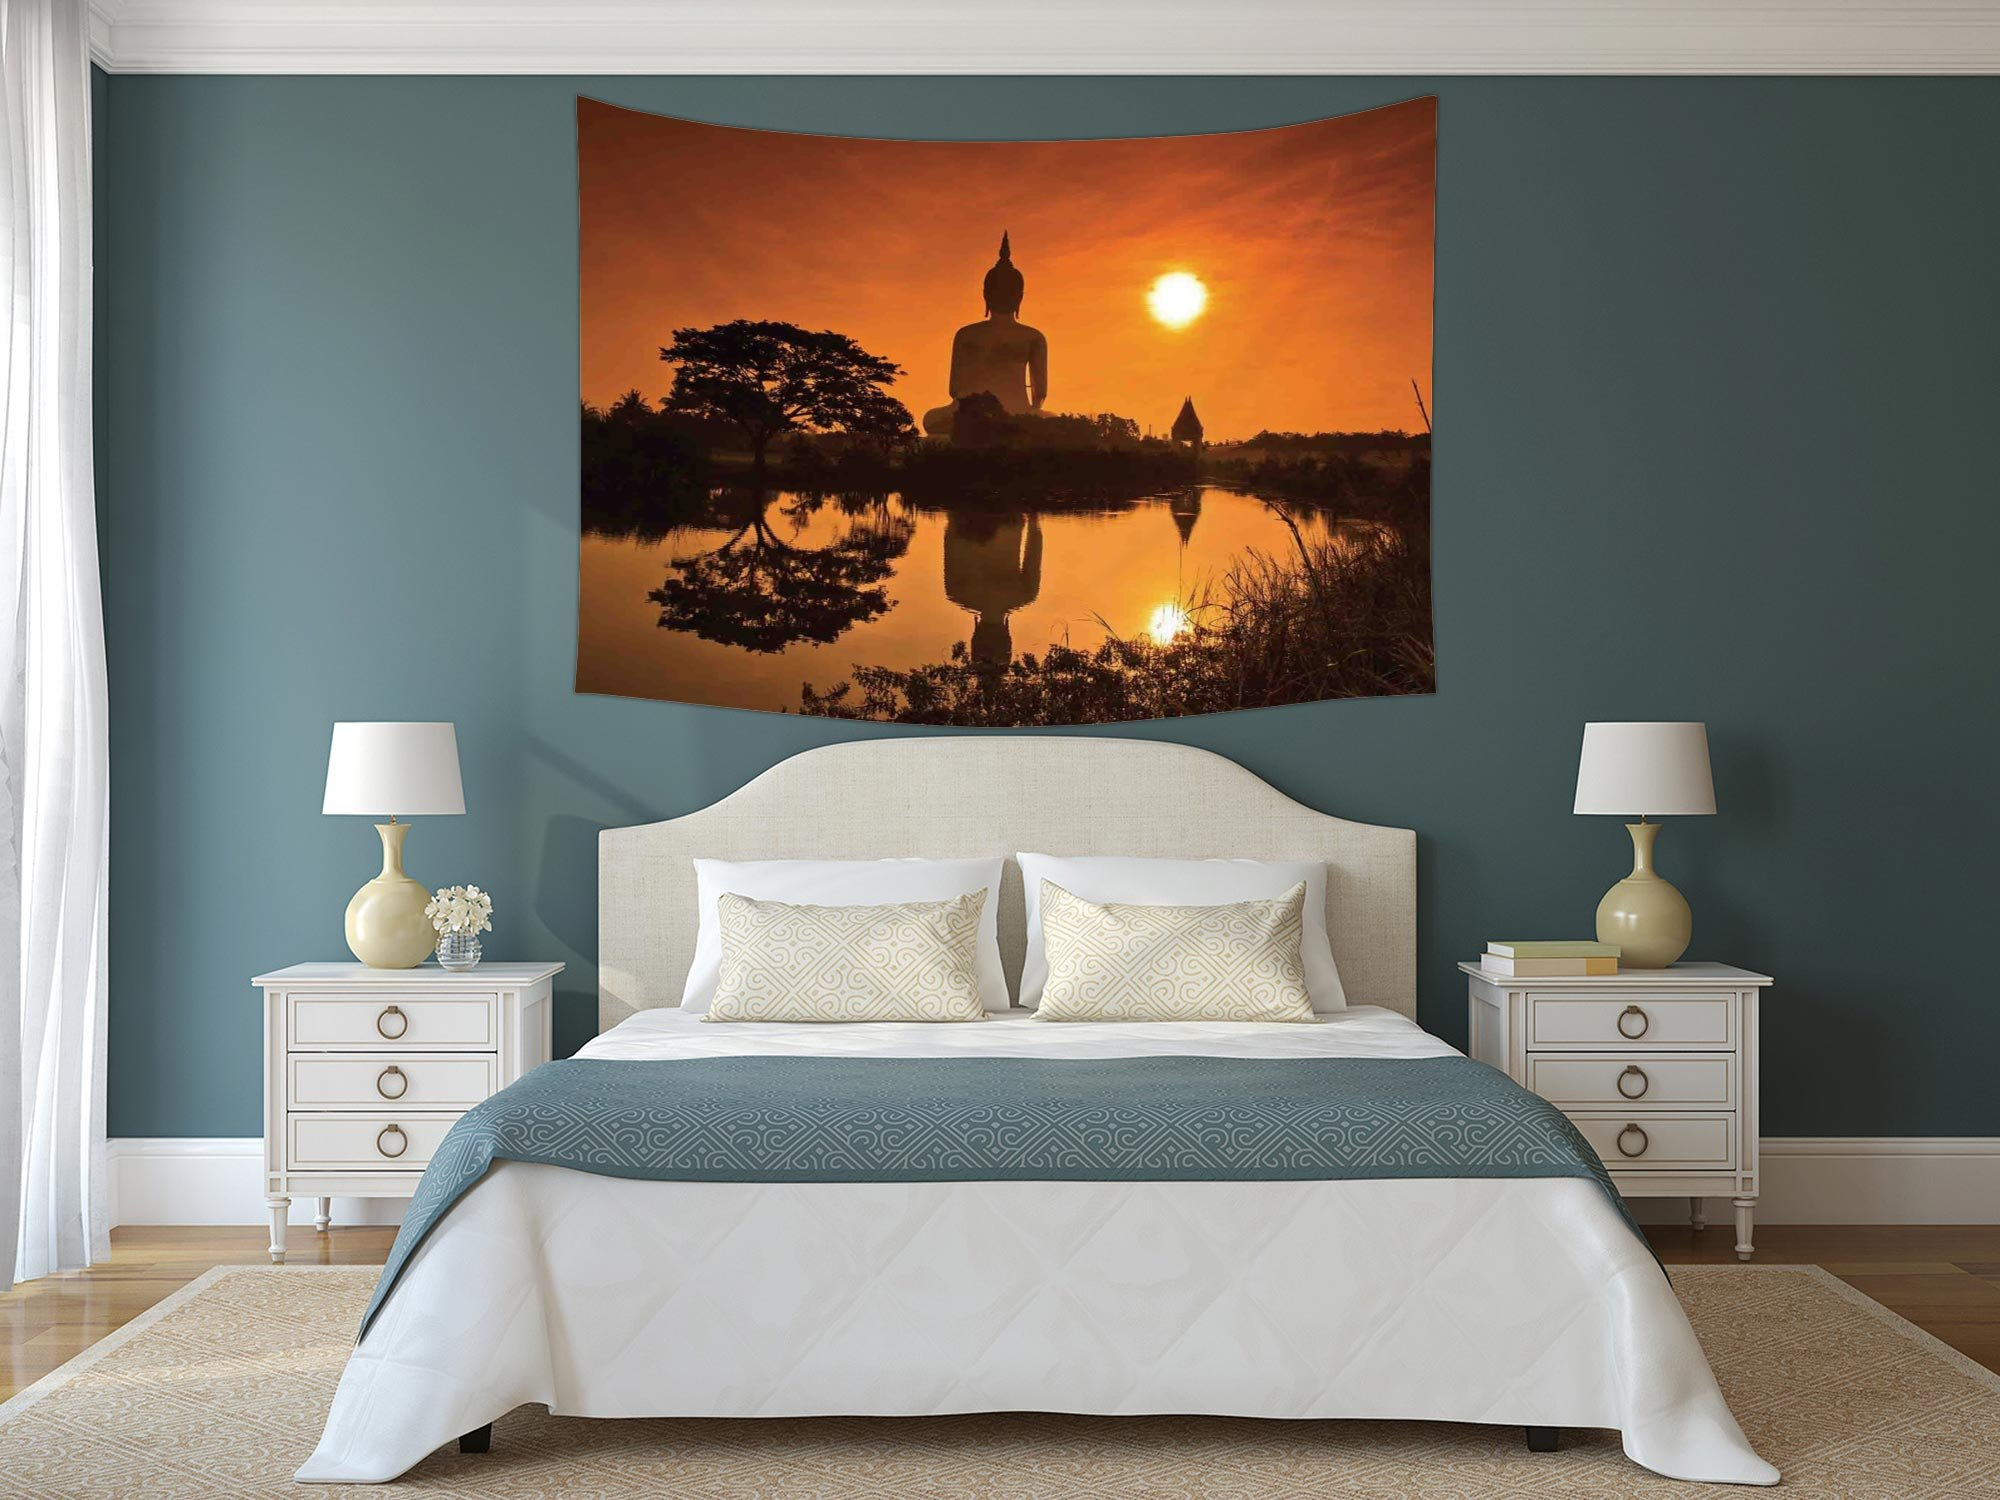 Polyester Tapestry Wall Hanging,Asian Decor,Big Giant Statue by the River at Sunset Thai Asian Culture Scenery Zen Print Decorative,Burnt Orange,Wall Decor for Bedroom Living Room Dorm